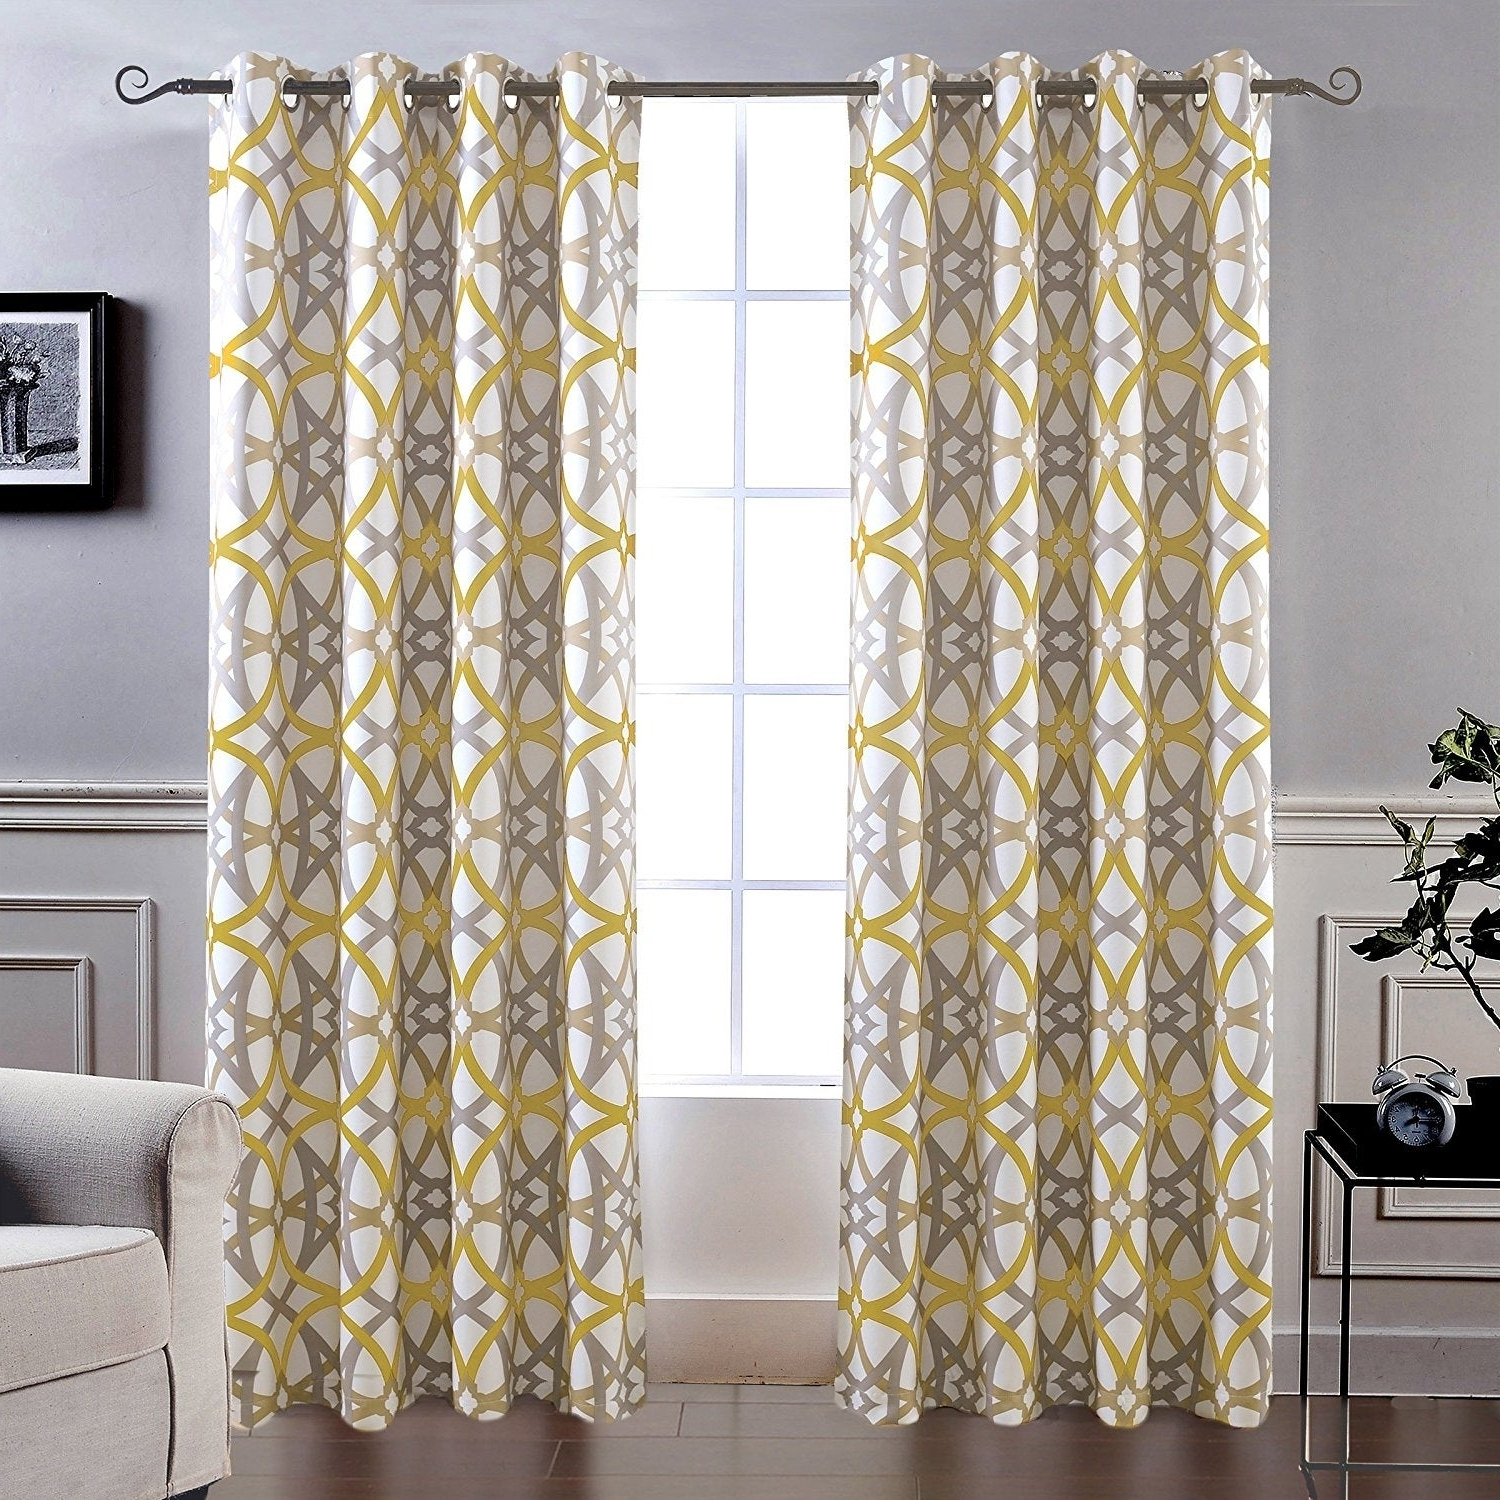 Famous Carson Carrington Jarvenpaa Insulated Blackout Grommet Window Curtain Panel Pair With Insulated Blackout Grommet Window Curtain Panel Pairs (View 9 of 20)